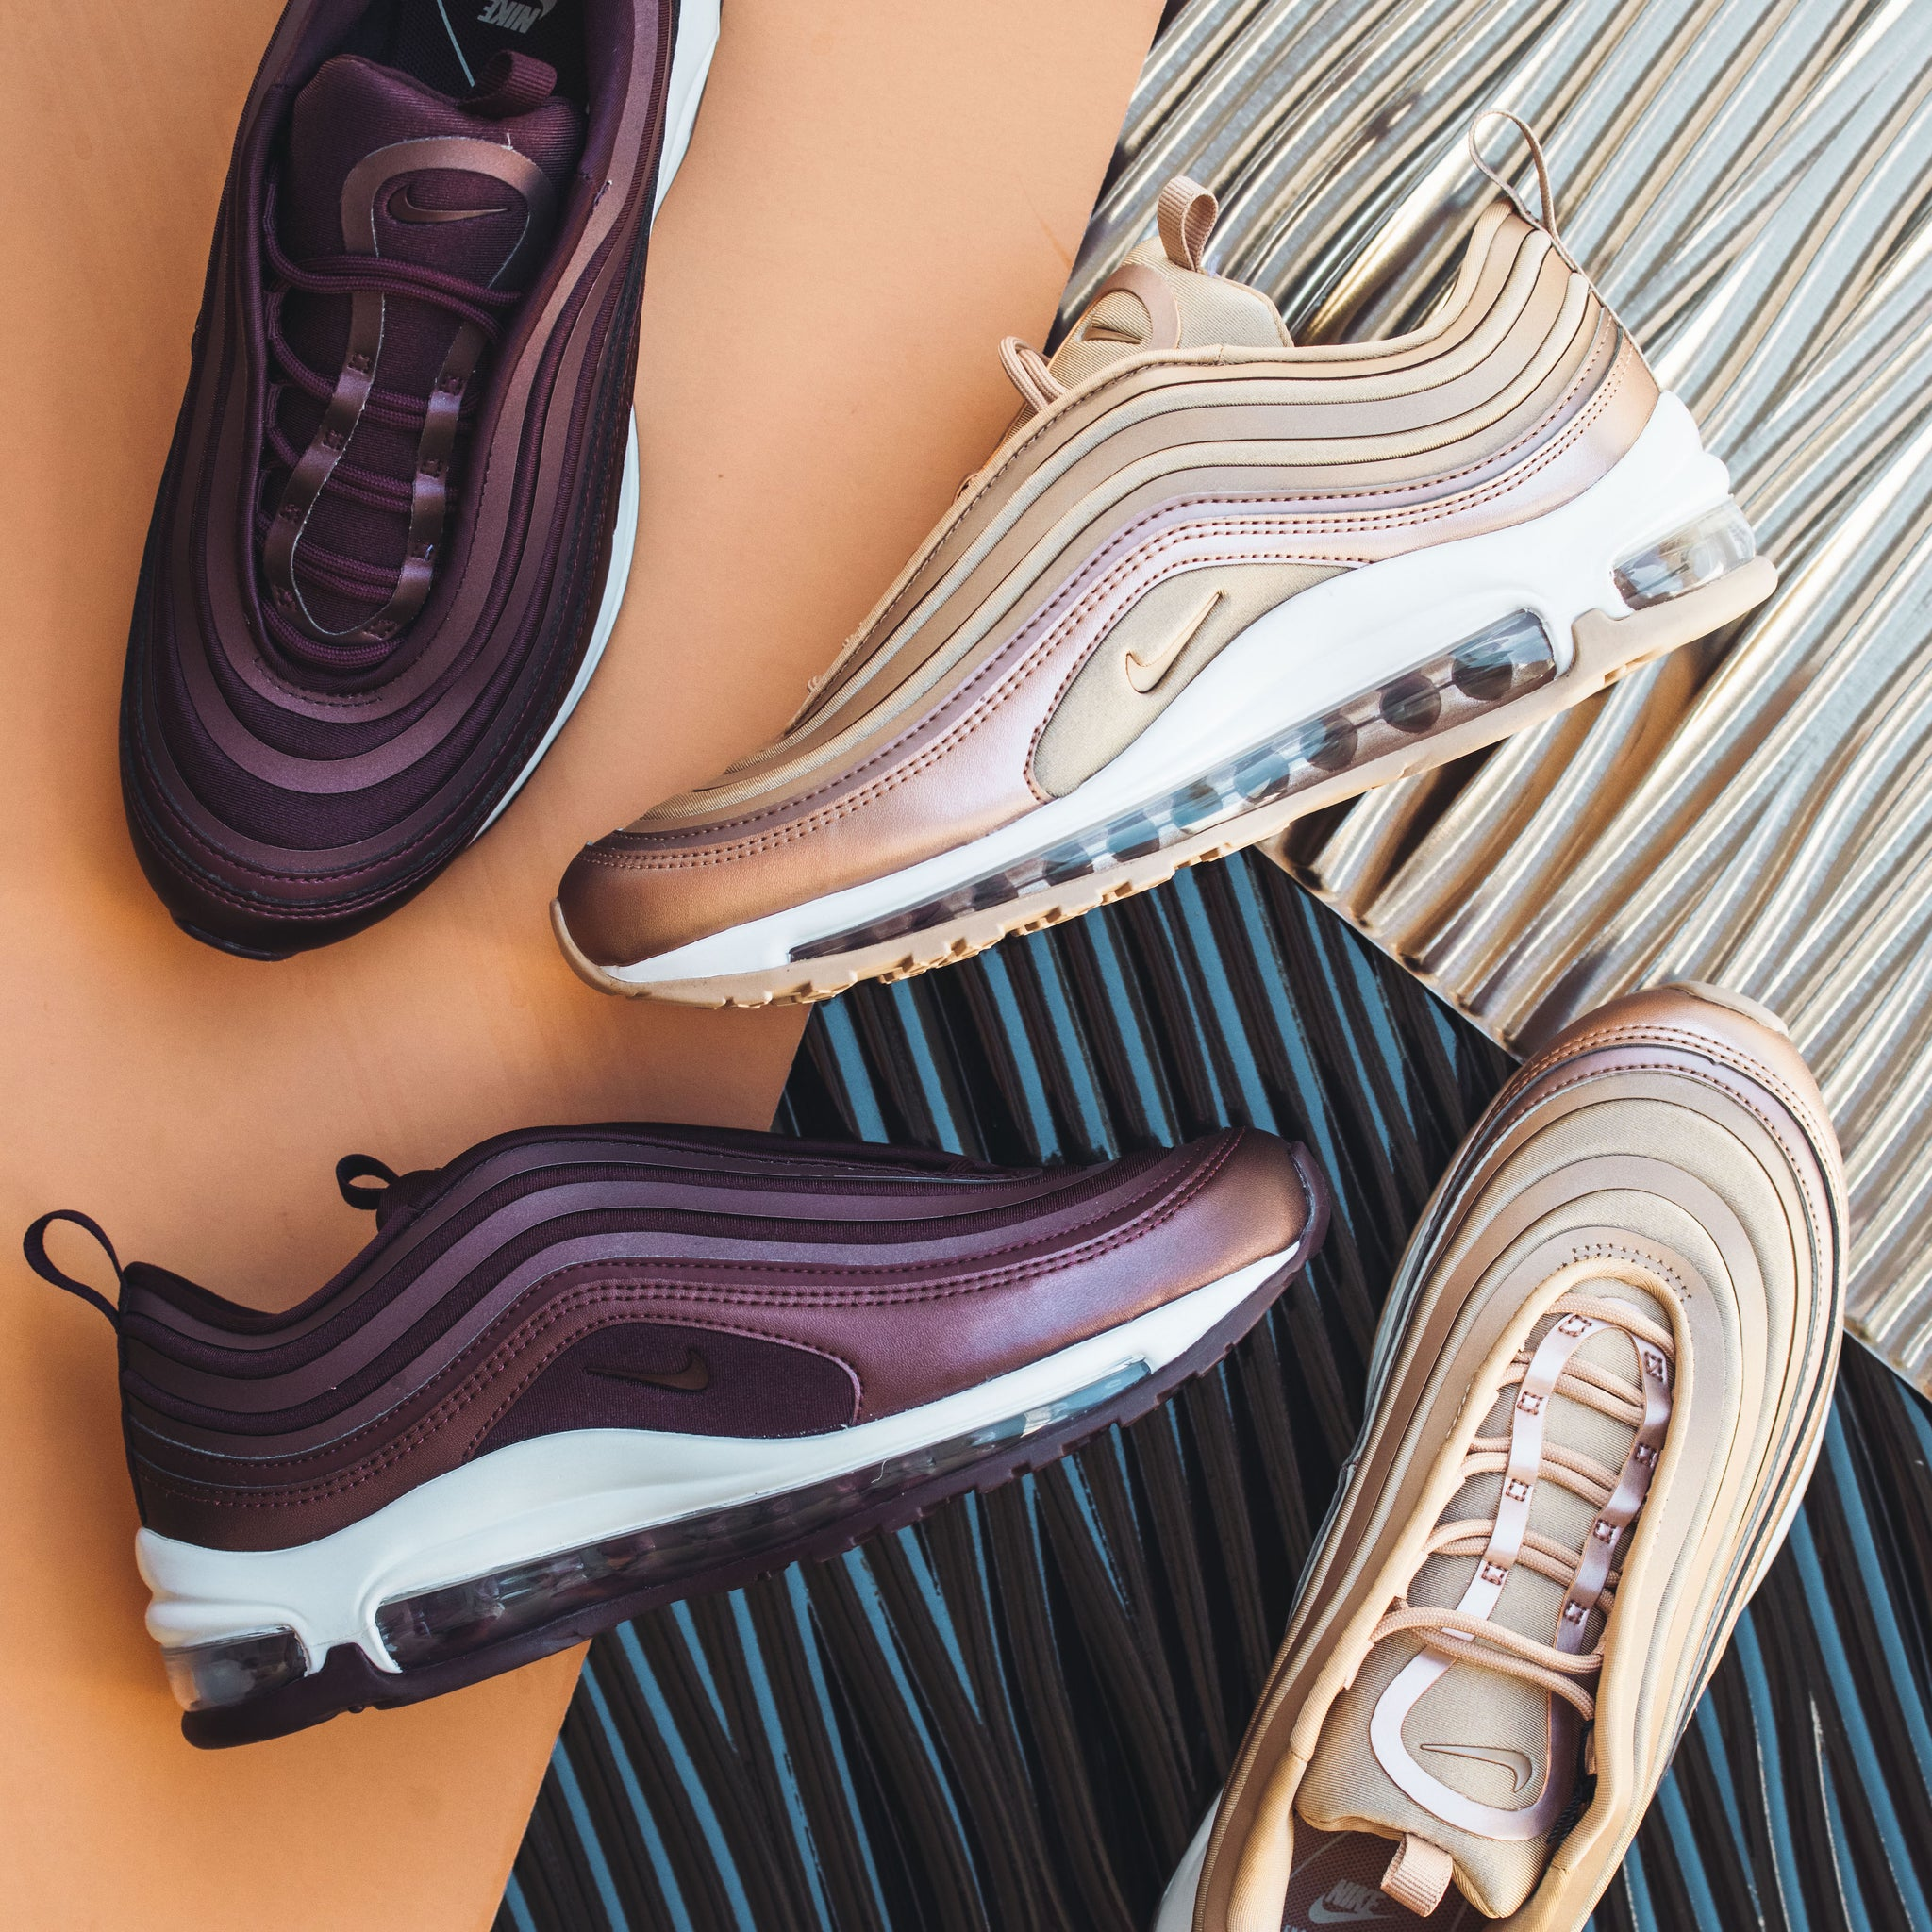 new products 873ab 699cc NIKE WOMEN'S AIR MAX '97 ULTRA '17